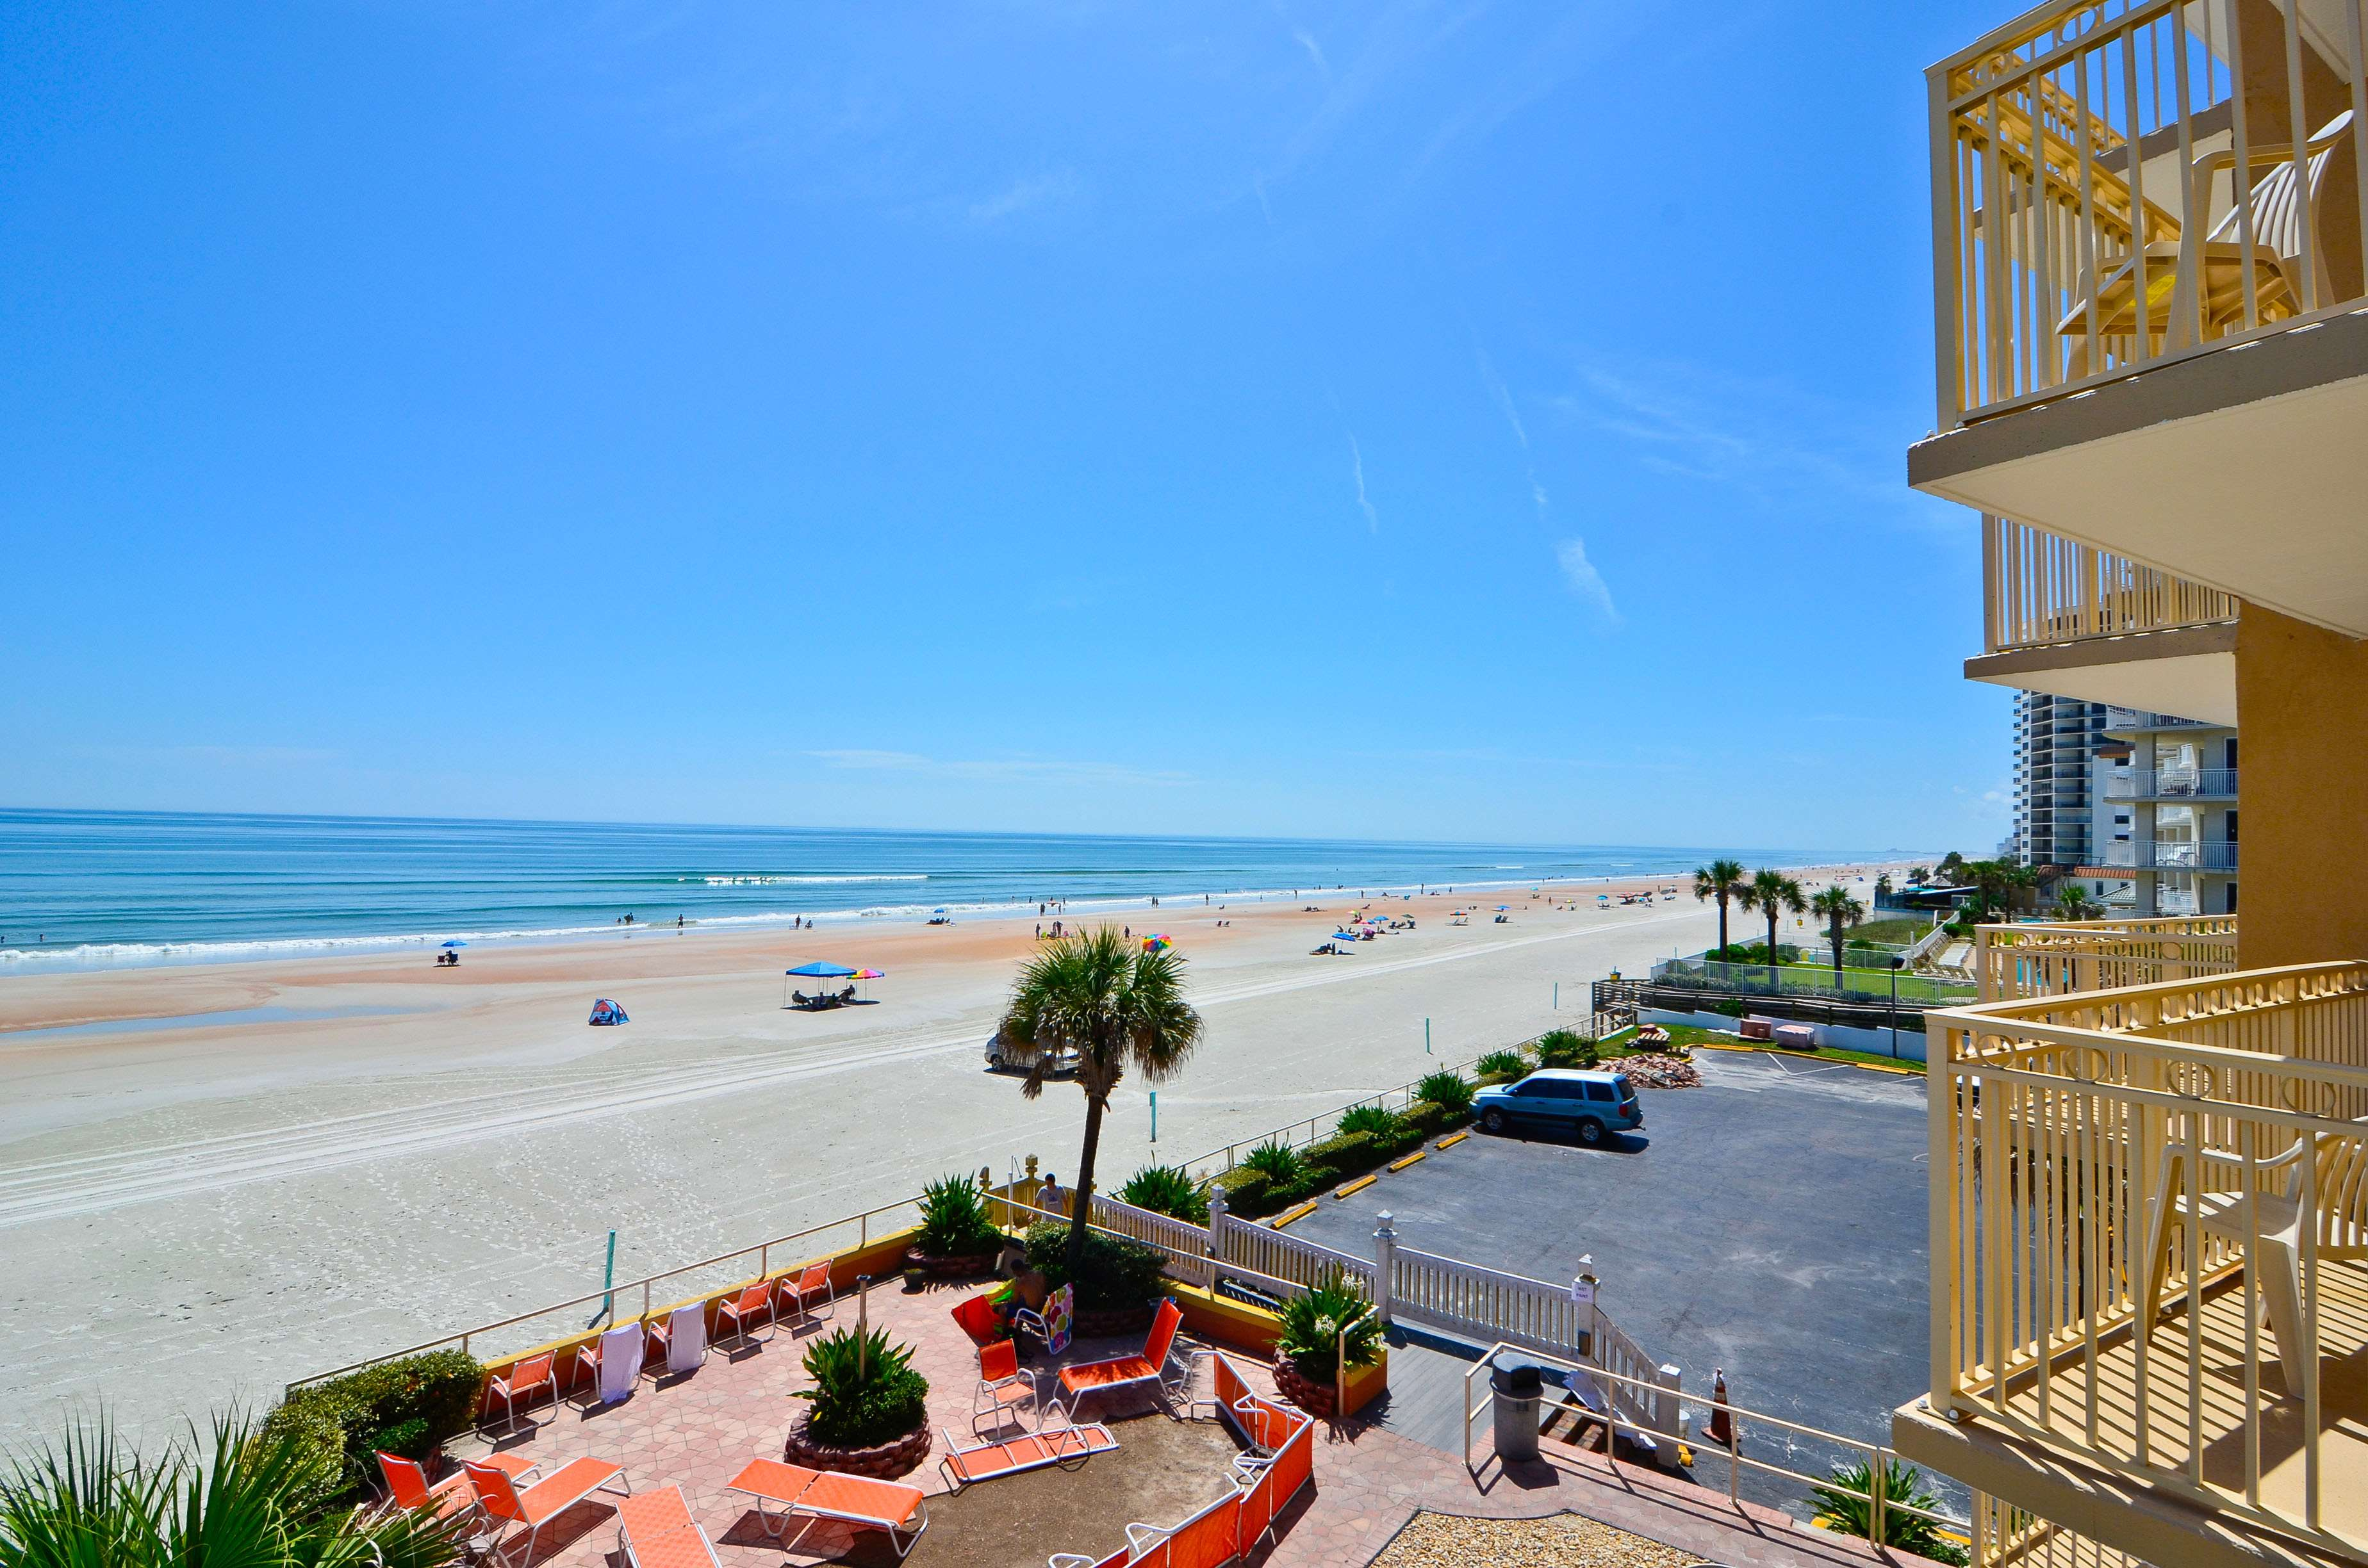 Eleven Daytona Beach Shores